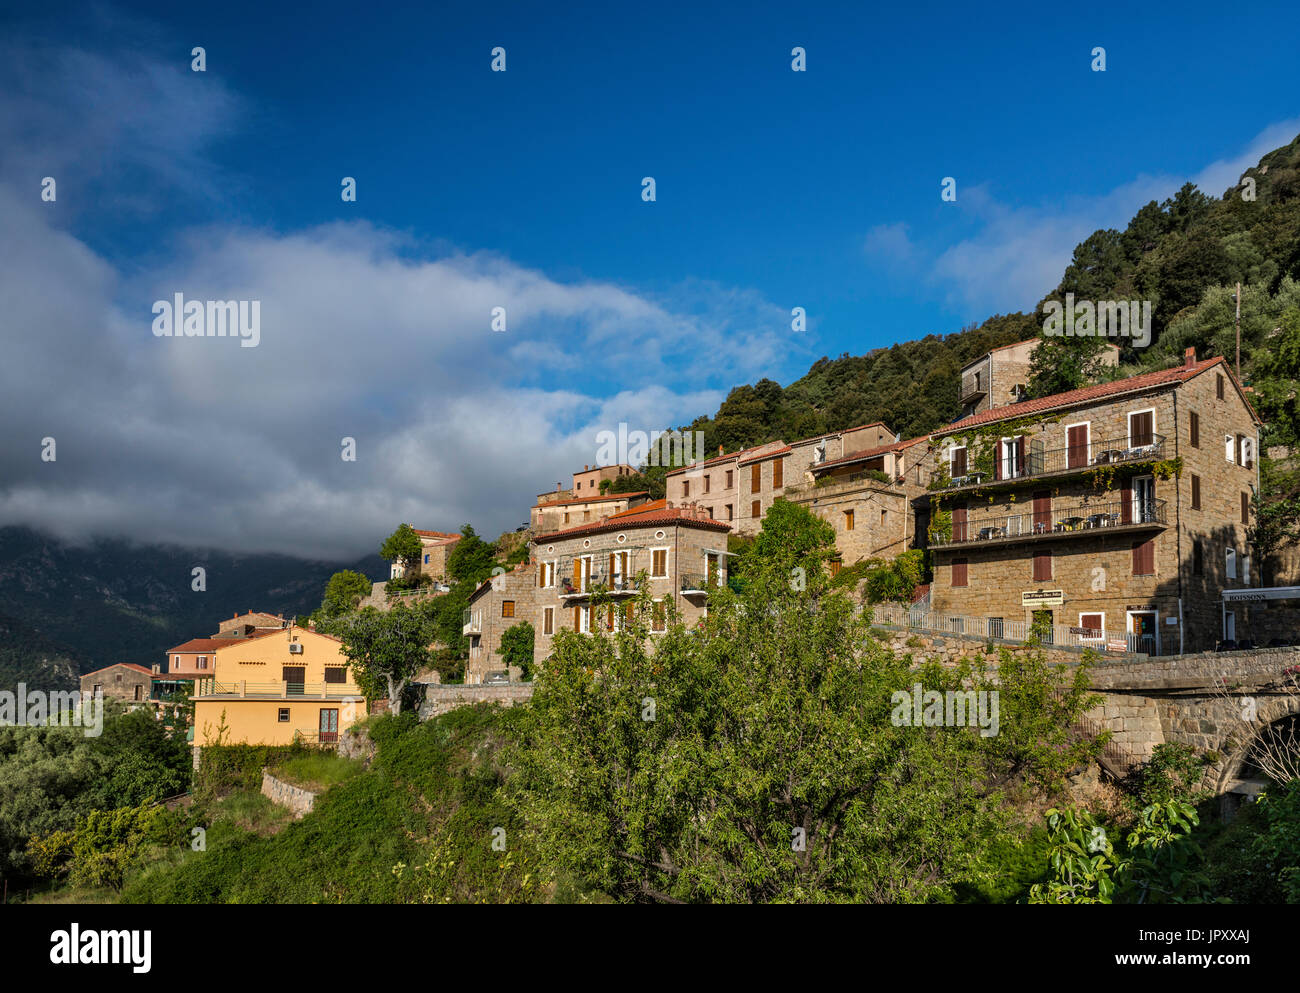 Hill town de l'Ota, les gorges de Spelunca, Corse-du-Sud, Corse, France Photo Stock